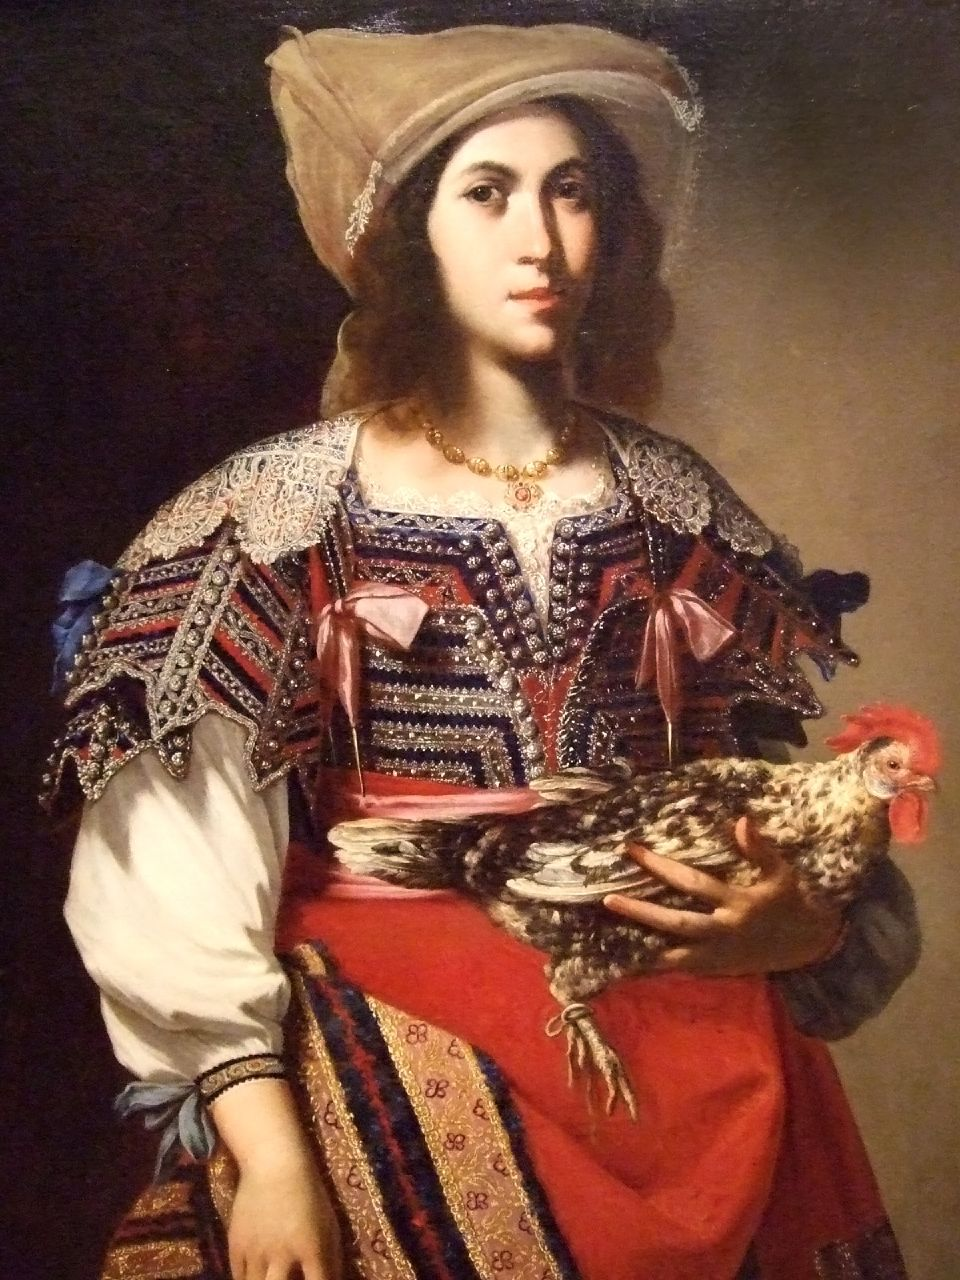 https://i2.wp.com/upload.wikimedia.org/wikipedia/commons/3/39/Stanzione%2C_Massimo_-_Woman_in_Neapolitan_Costume_-_1635.jpg